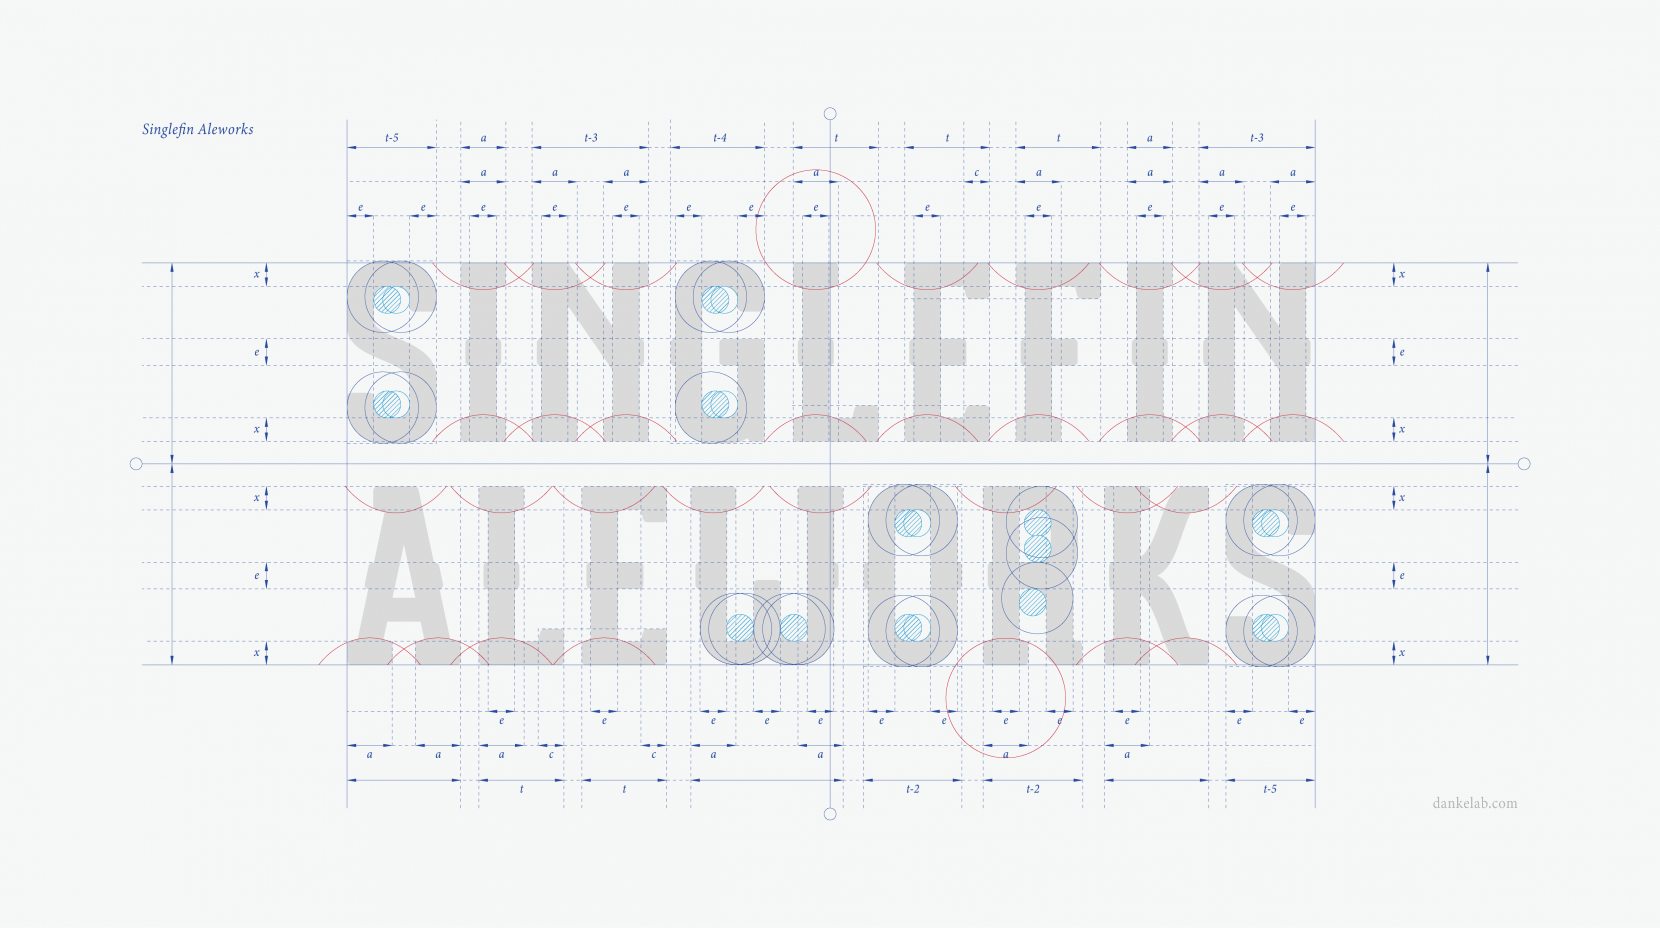 Dankelab_Golden_Ratio_Singlefin_Aleworks